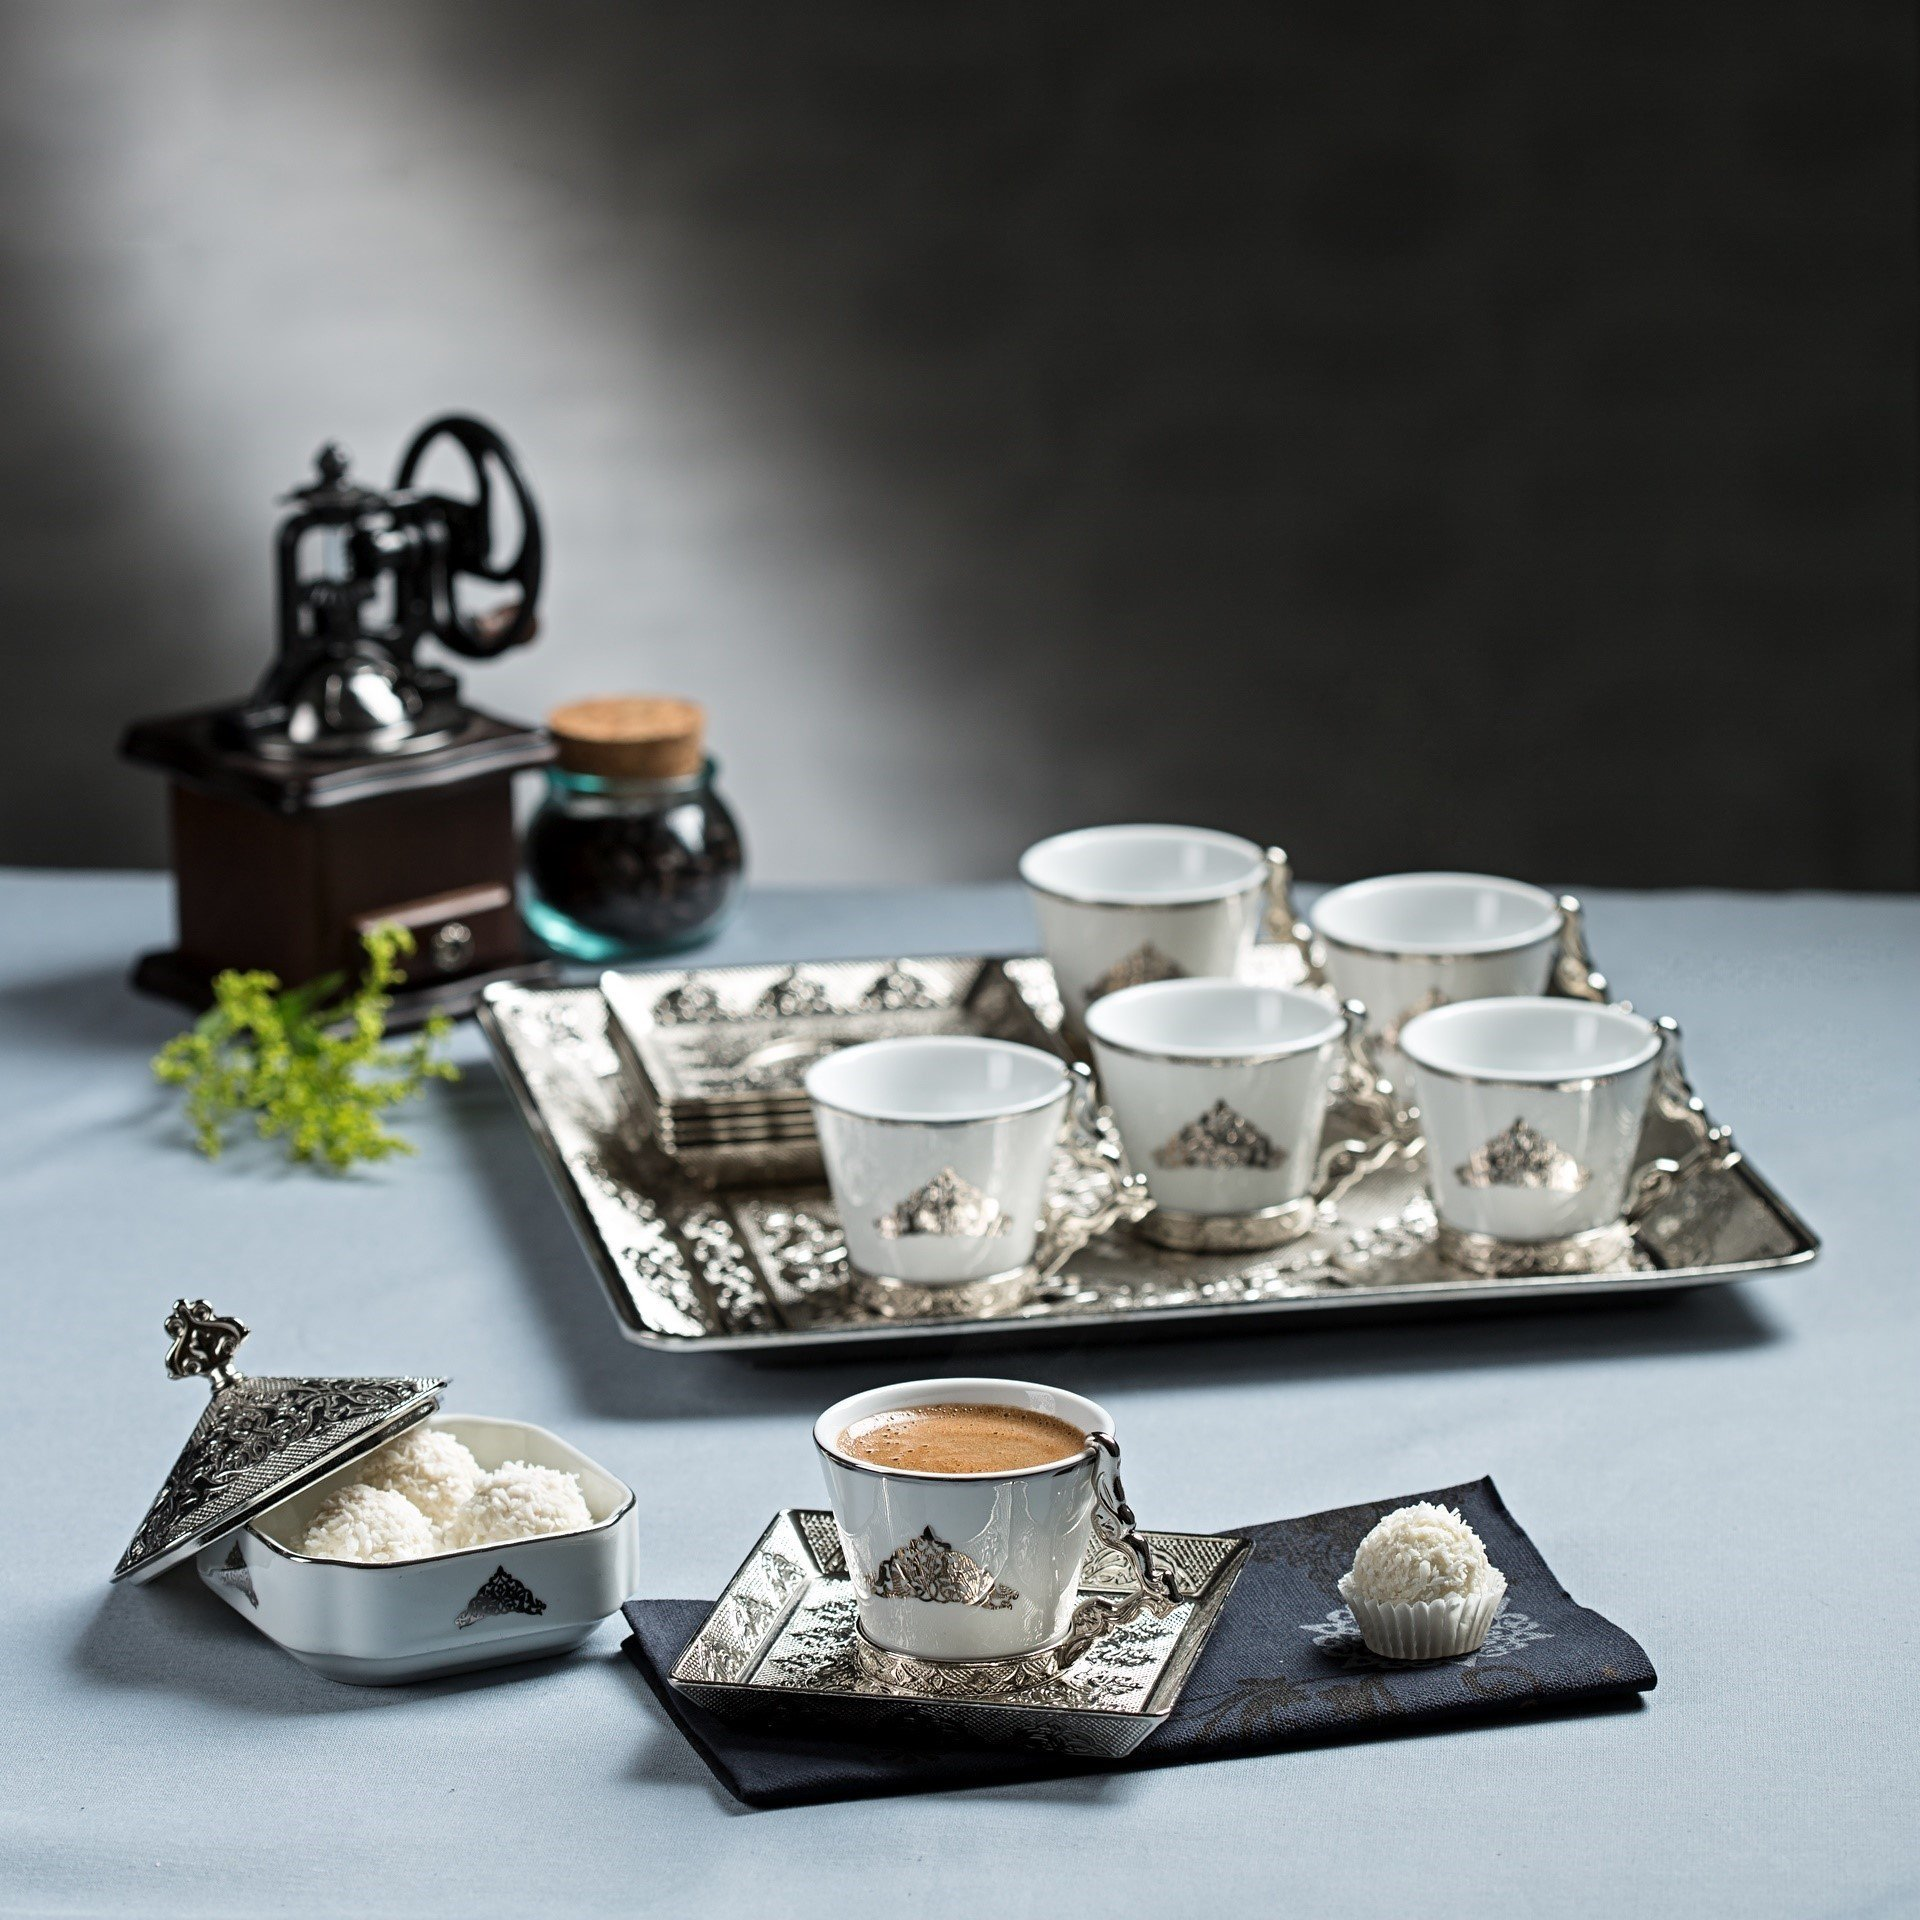 Gold Case Silver Plated Turkish, Arabic, Greek and Espresso Coffee Set for 6 - Made in Turkey - 21 Pieced Set for 6, Silver